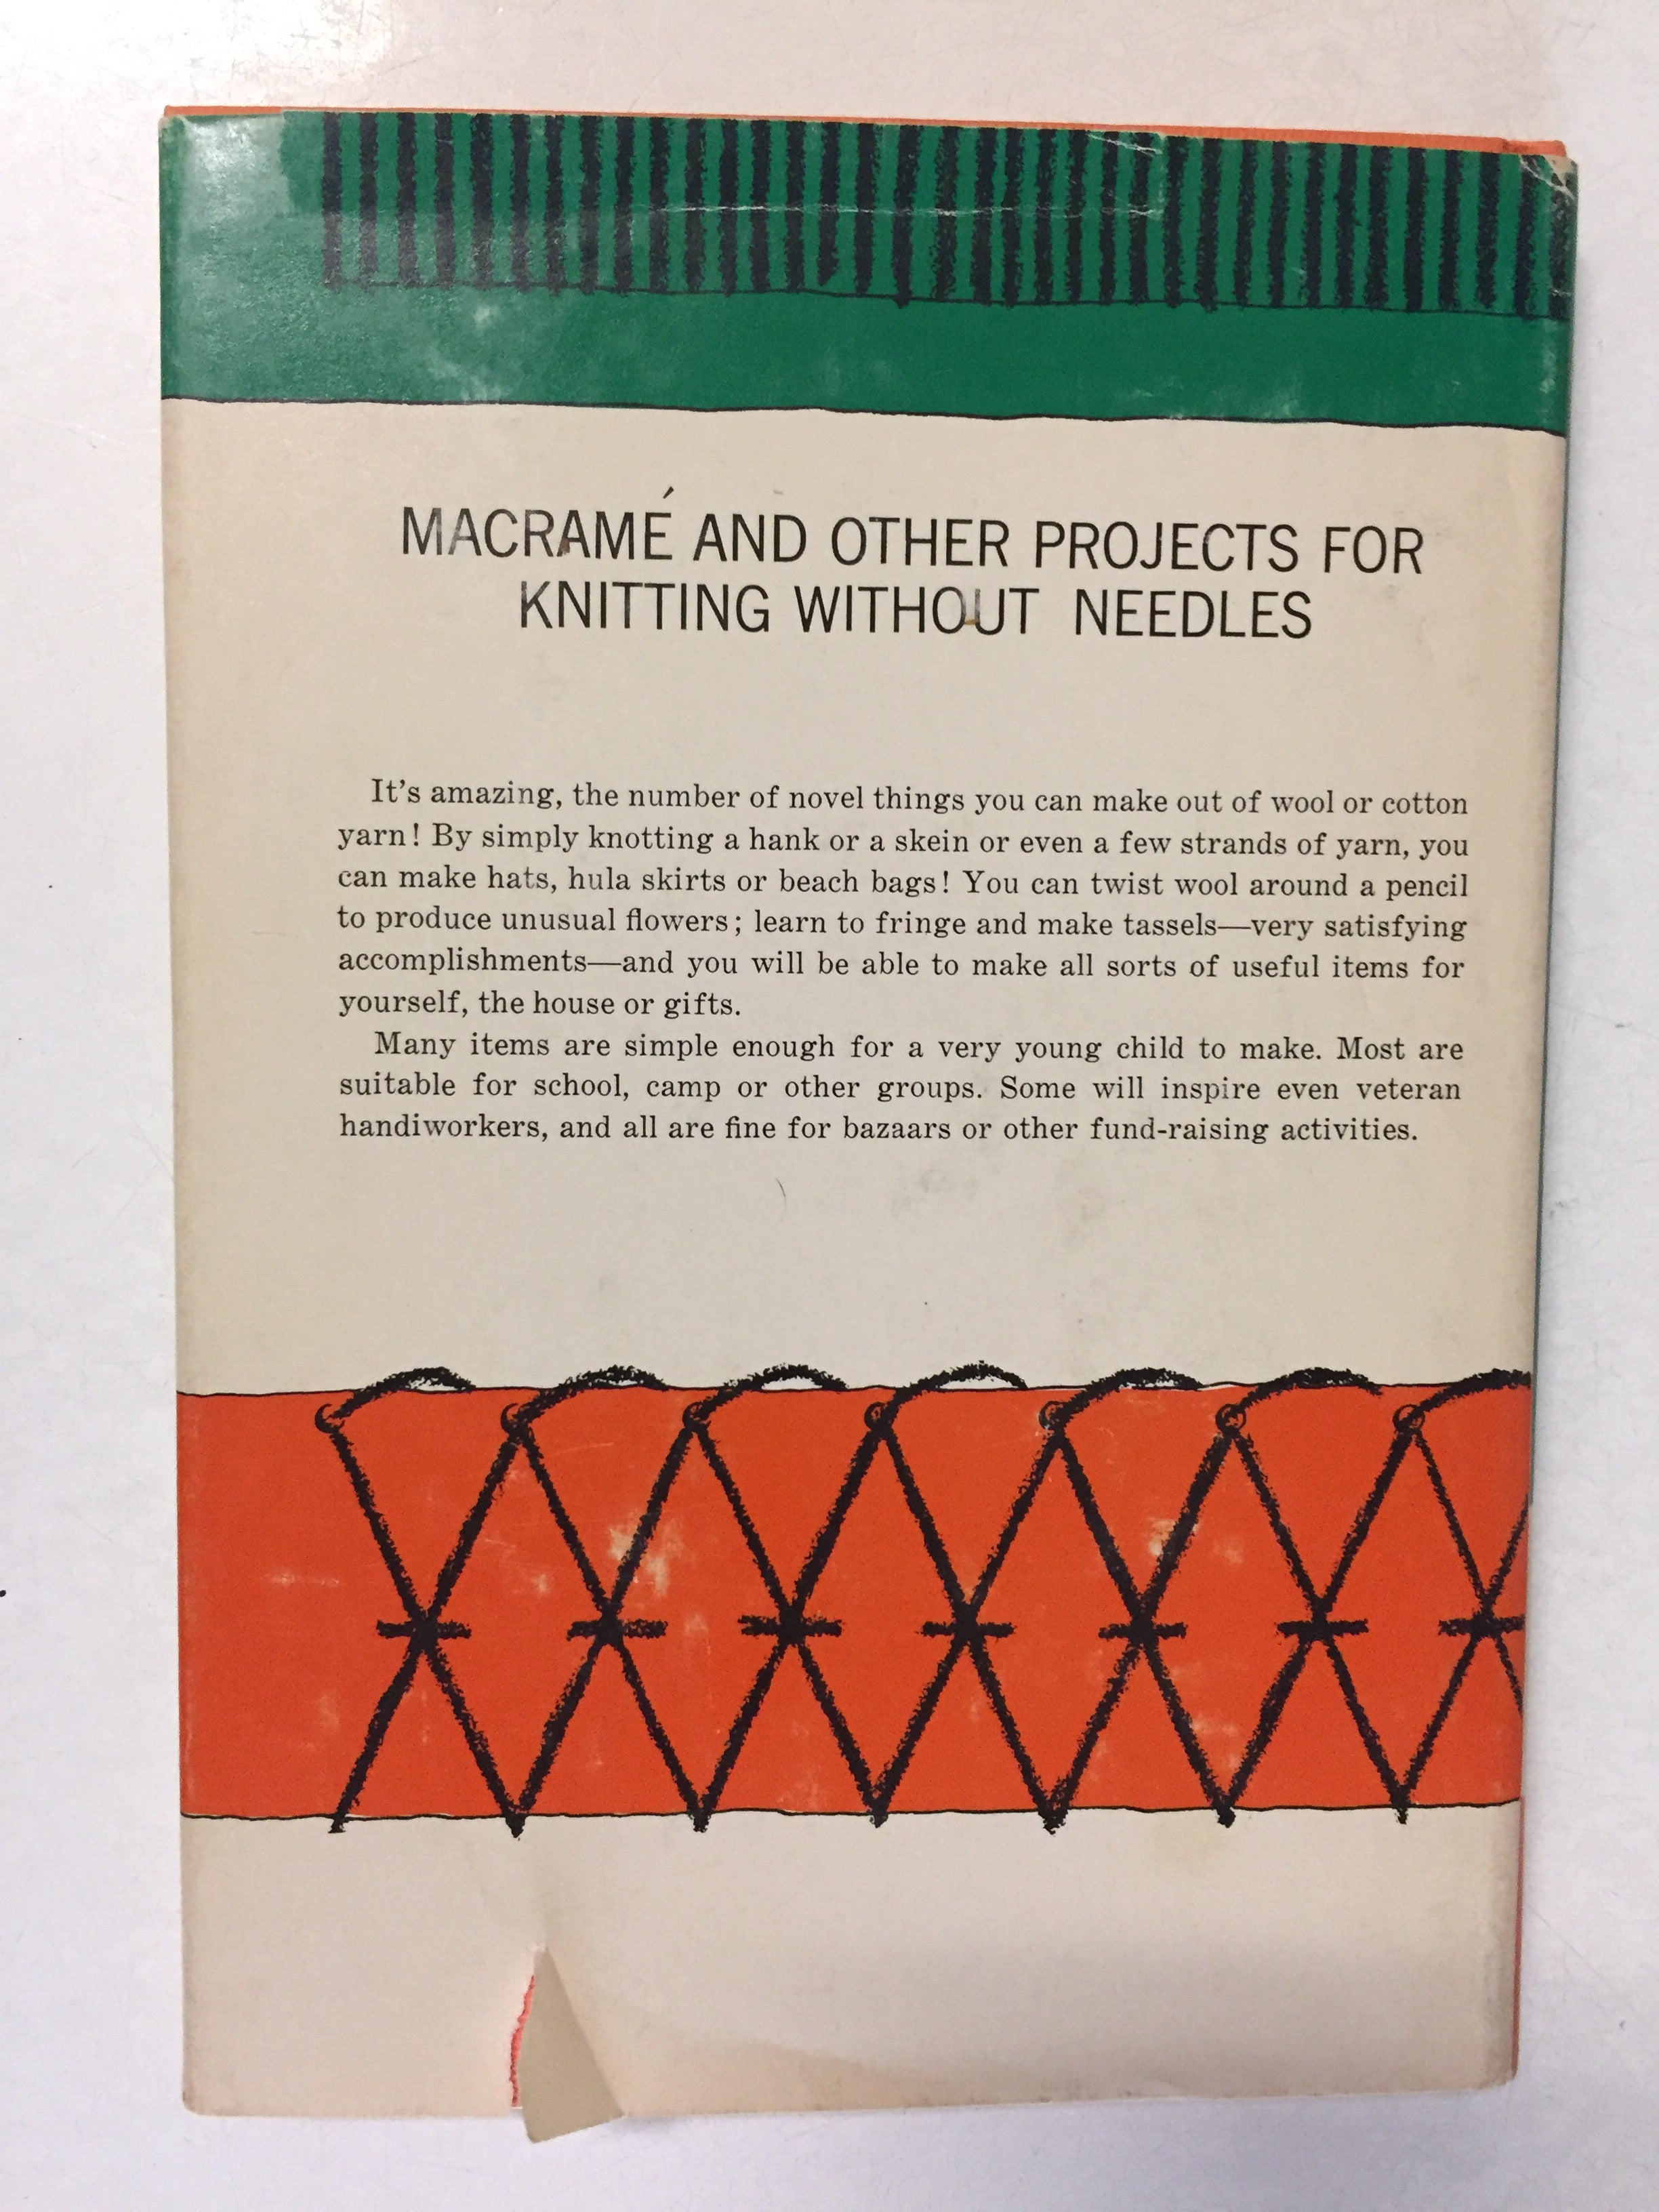 Macreme and Other Projects for Knitting Without Needles - Slickcatbooks